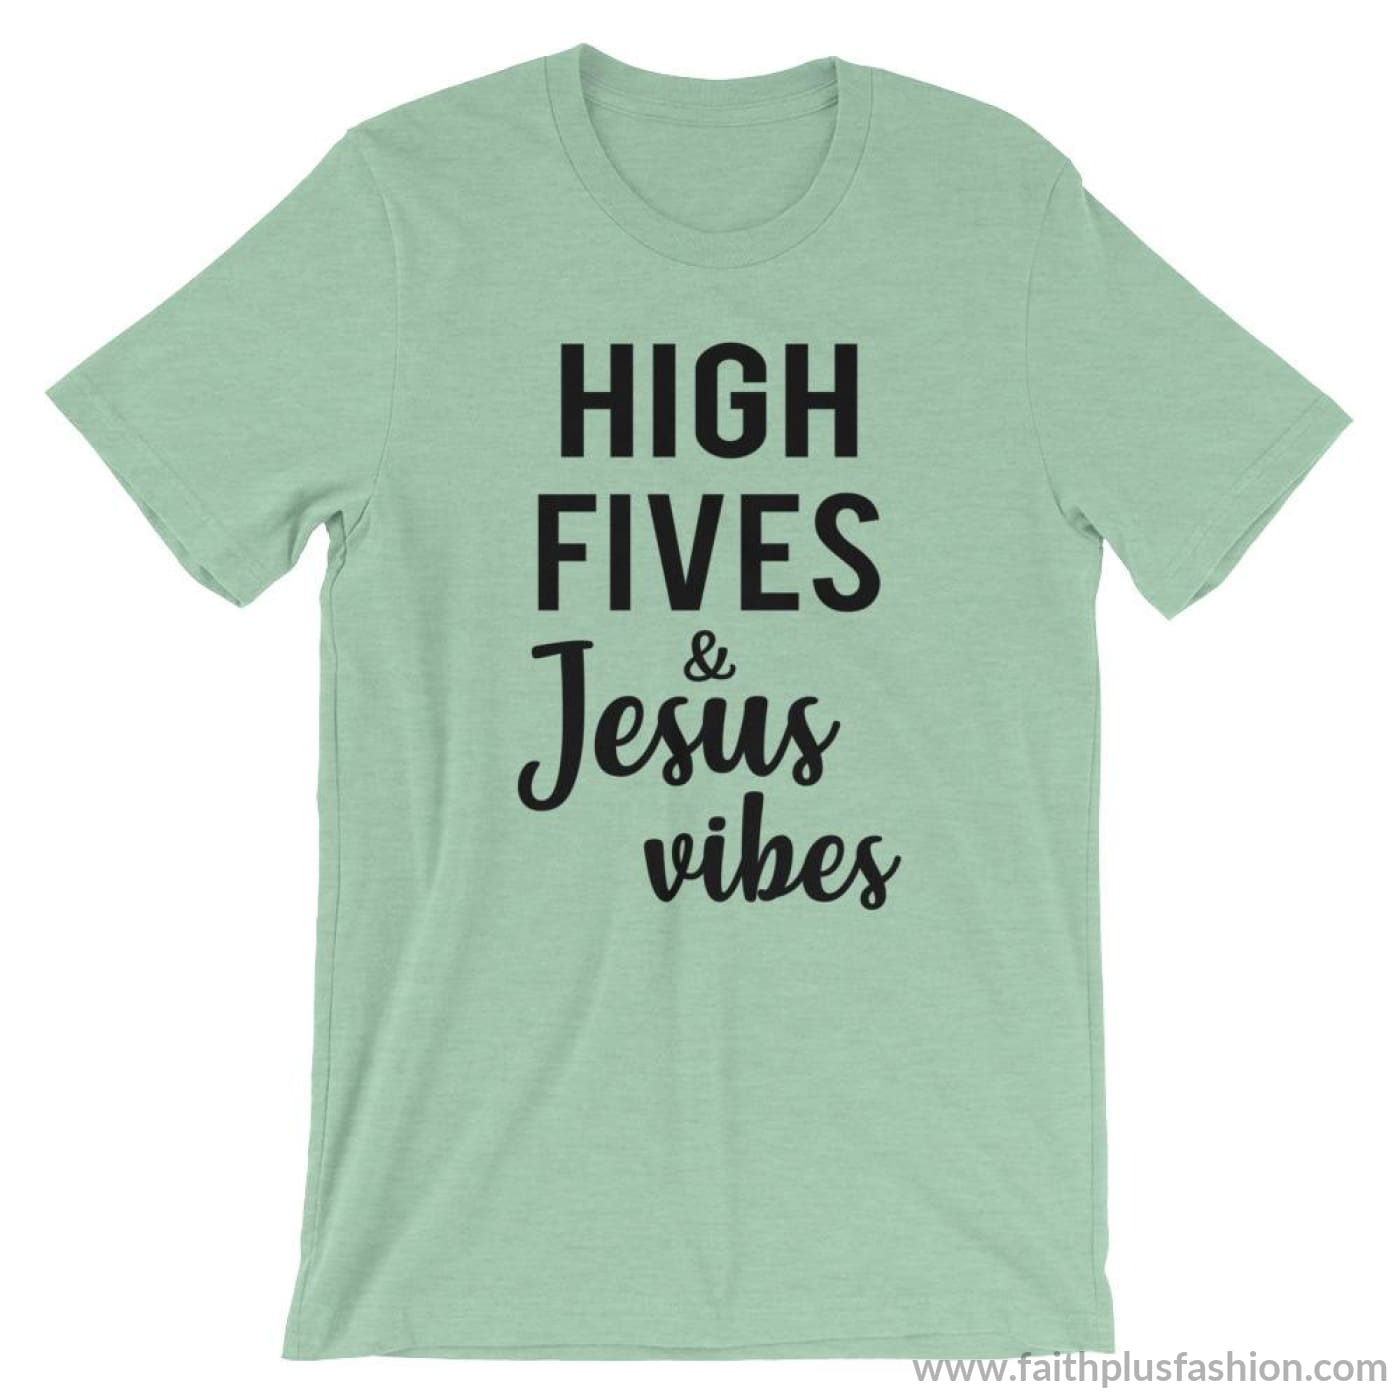 High Fives & Jesus Vibes Short-Sleeve Unisex T-Shirt - Heather Prism Mint / S - T-Shirt